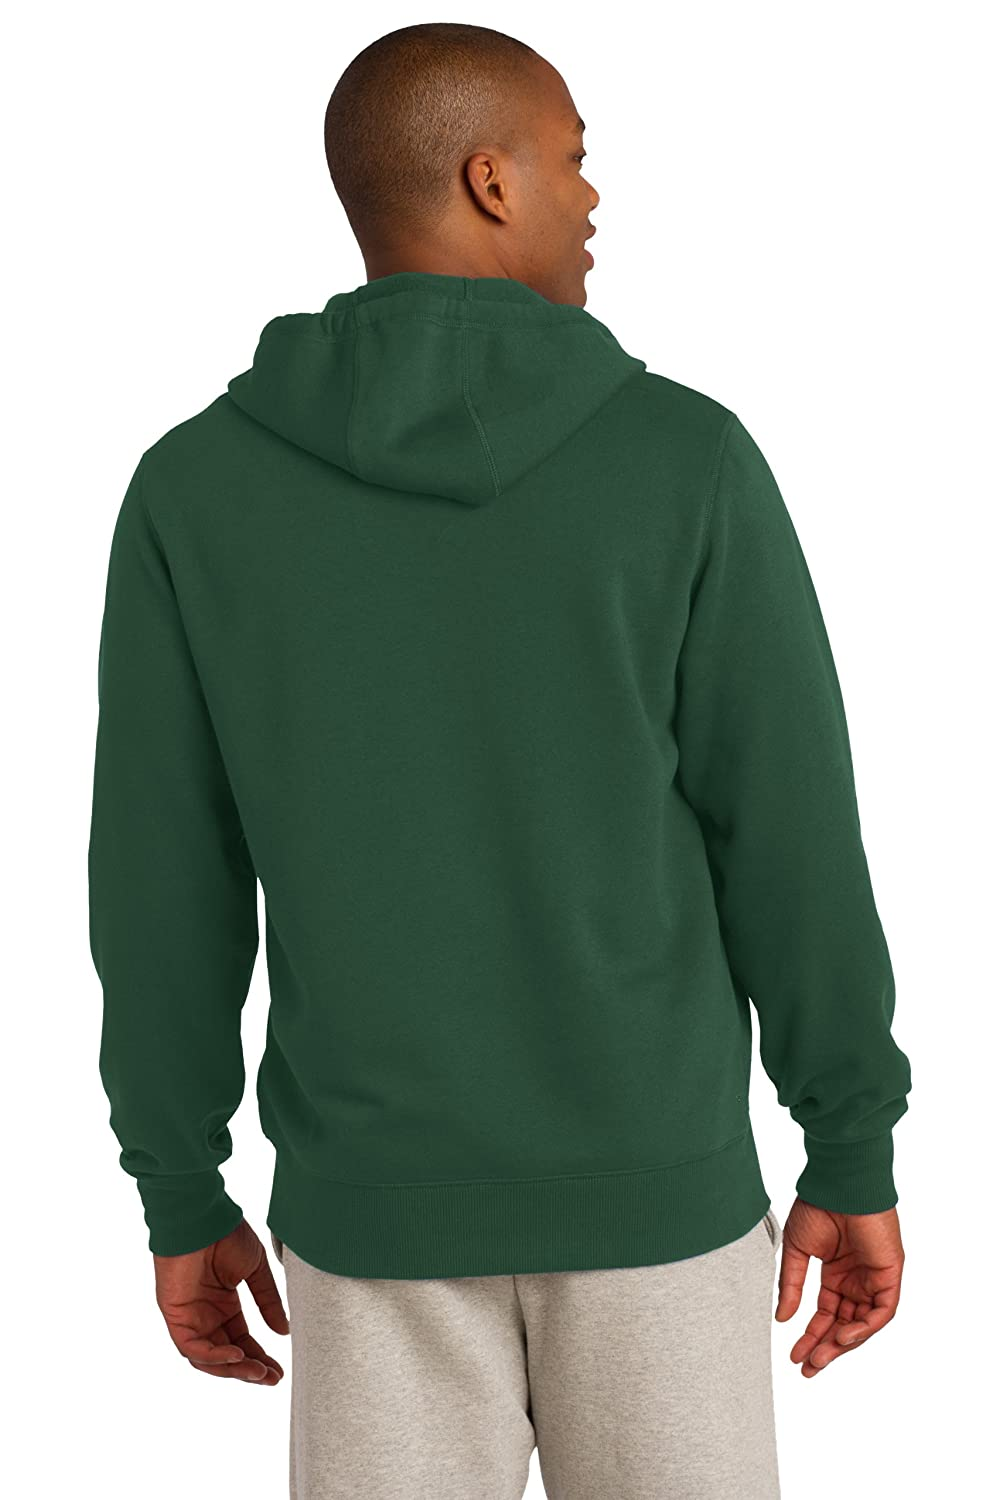 27fe446b54f Amazon.com  Sport-Tek Men s Full-Zip Hooded Sweatshirt